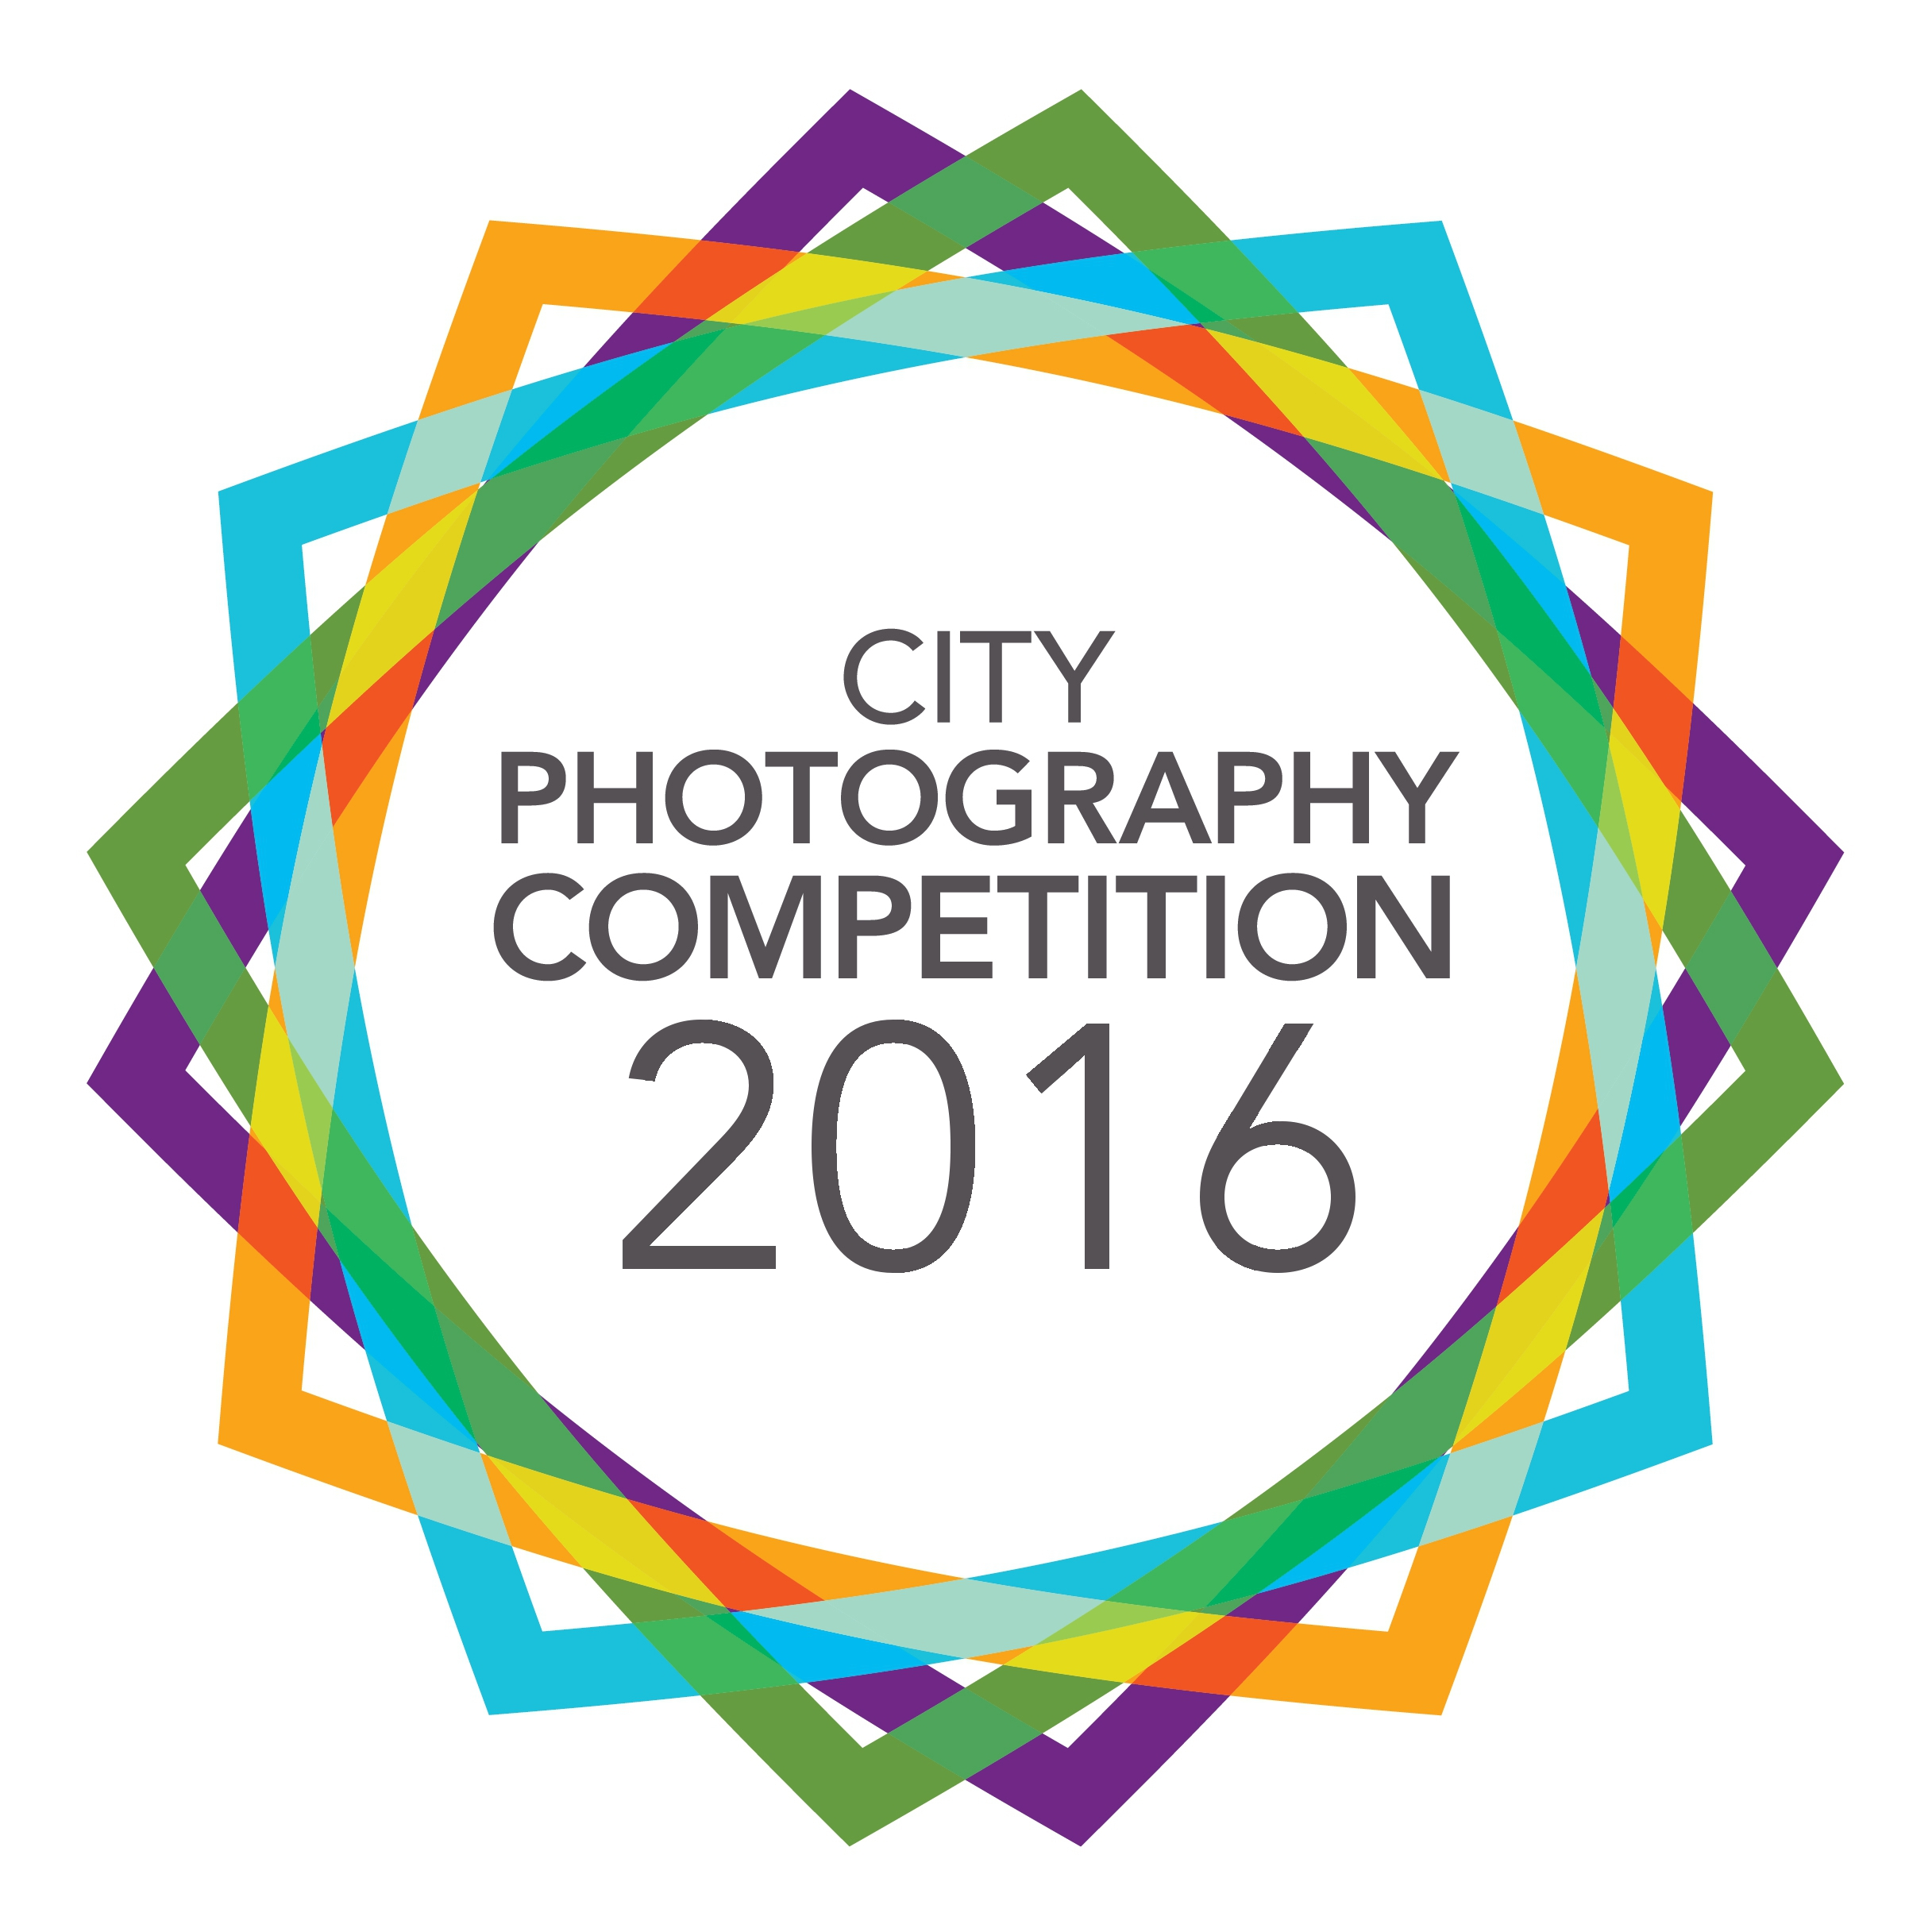 Chelmsford City Photography Competition 2016 - logo